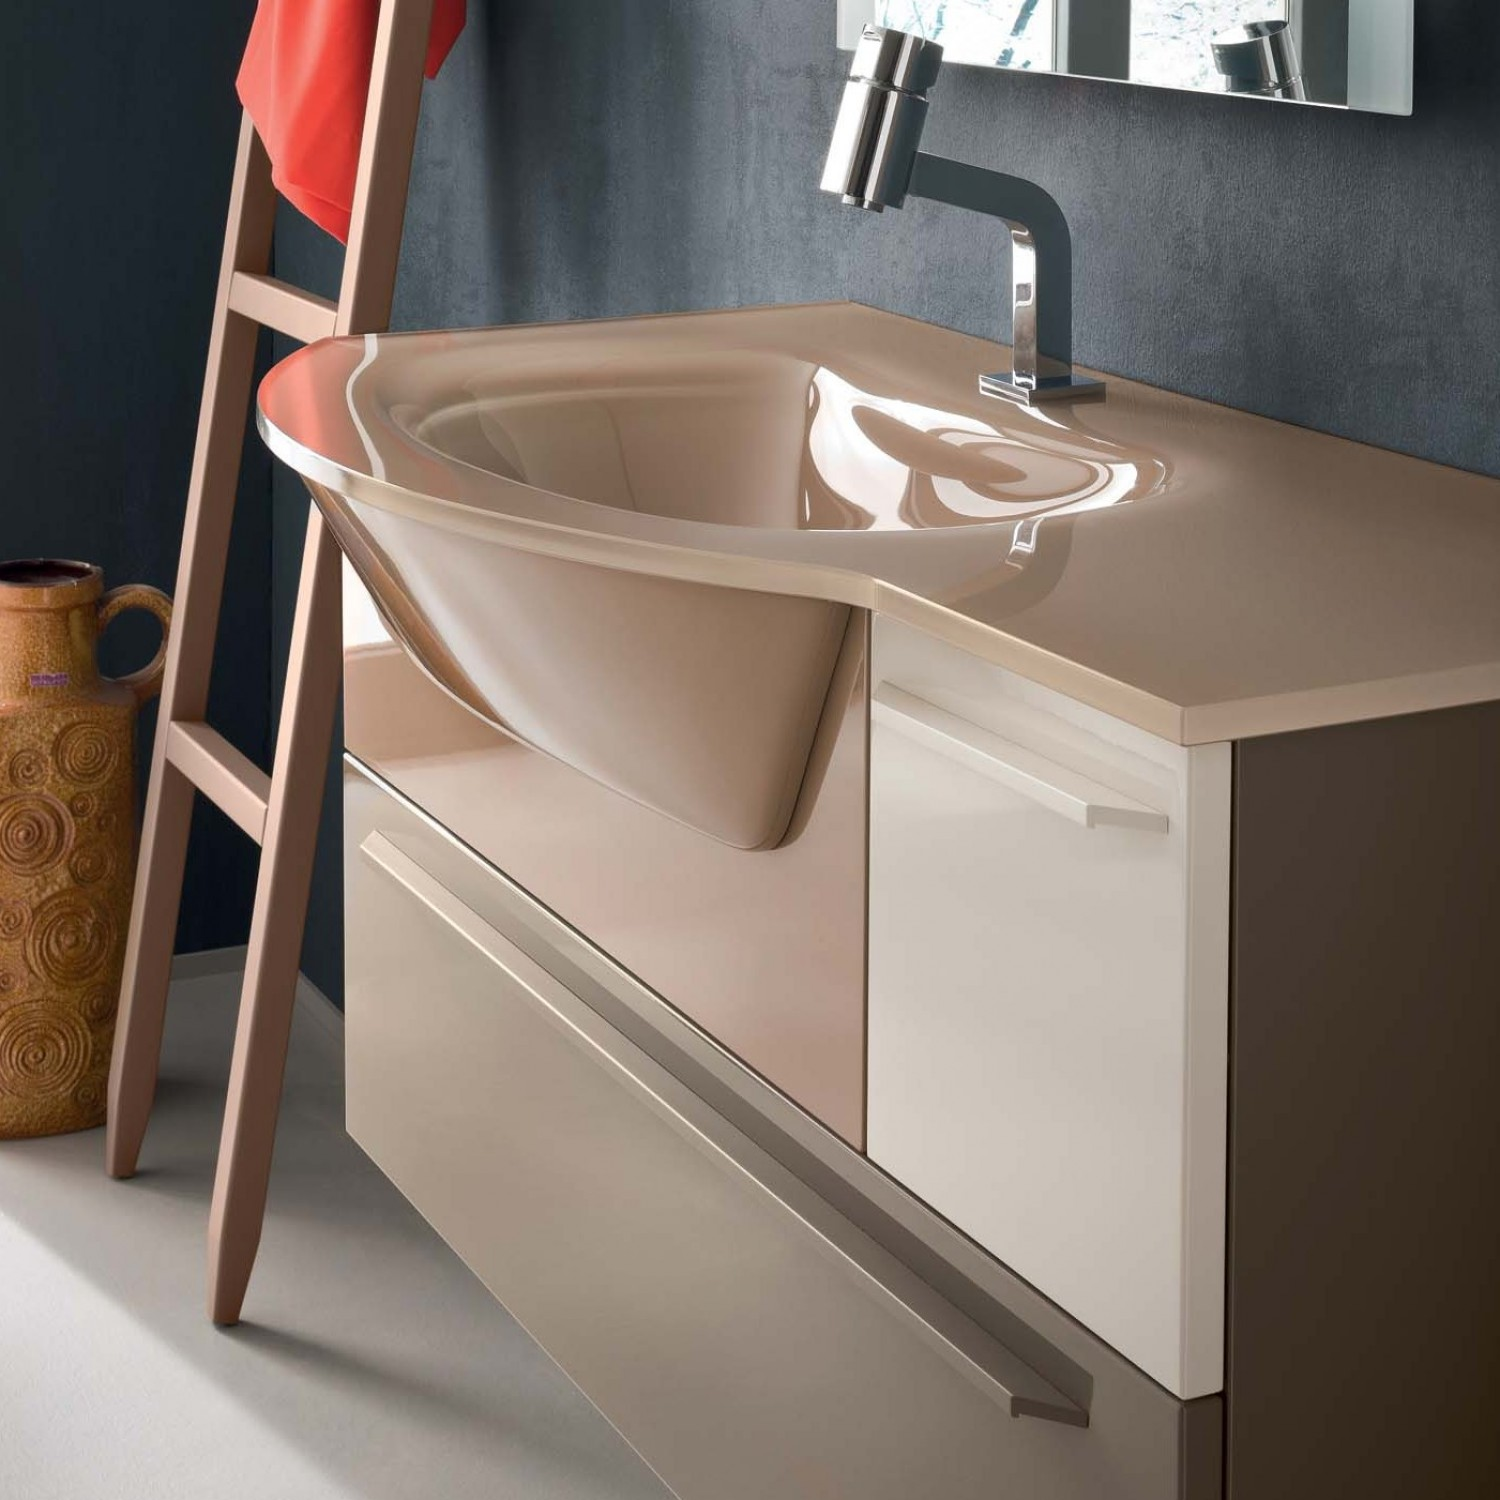 Arredaclick blog lavabo del bagno quale materiale for Lavabo con mobile bagno